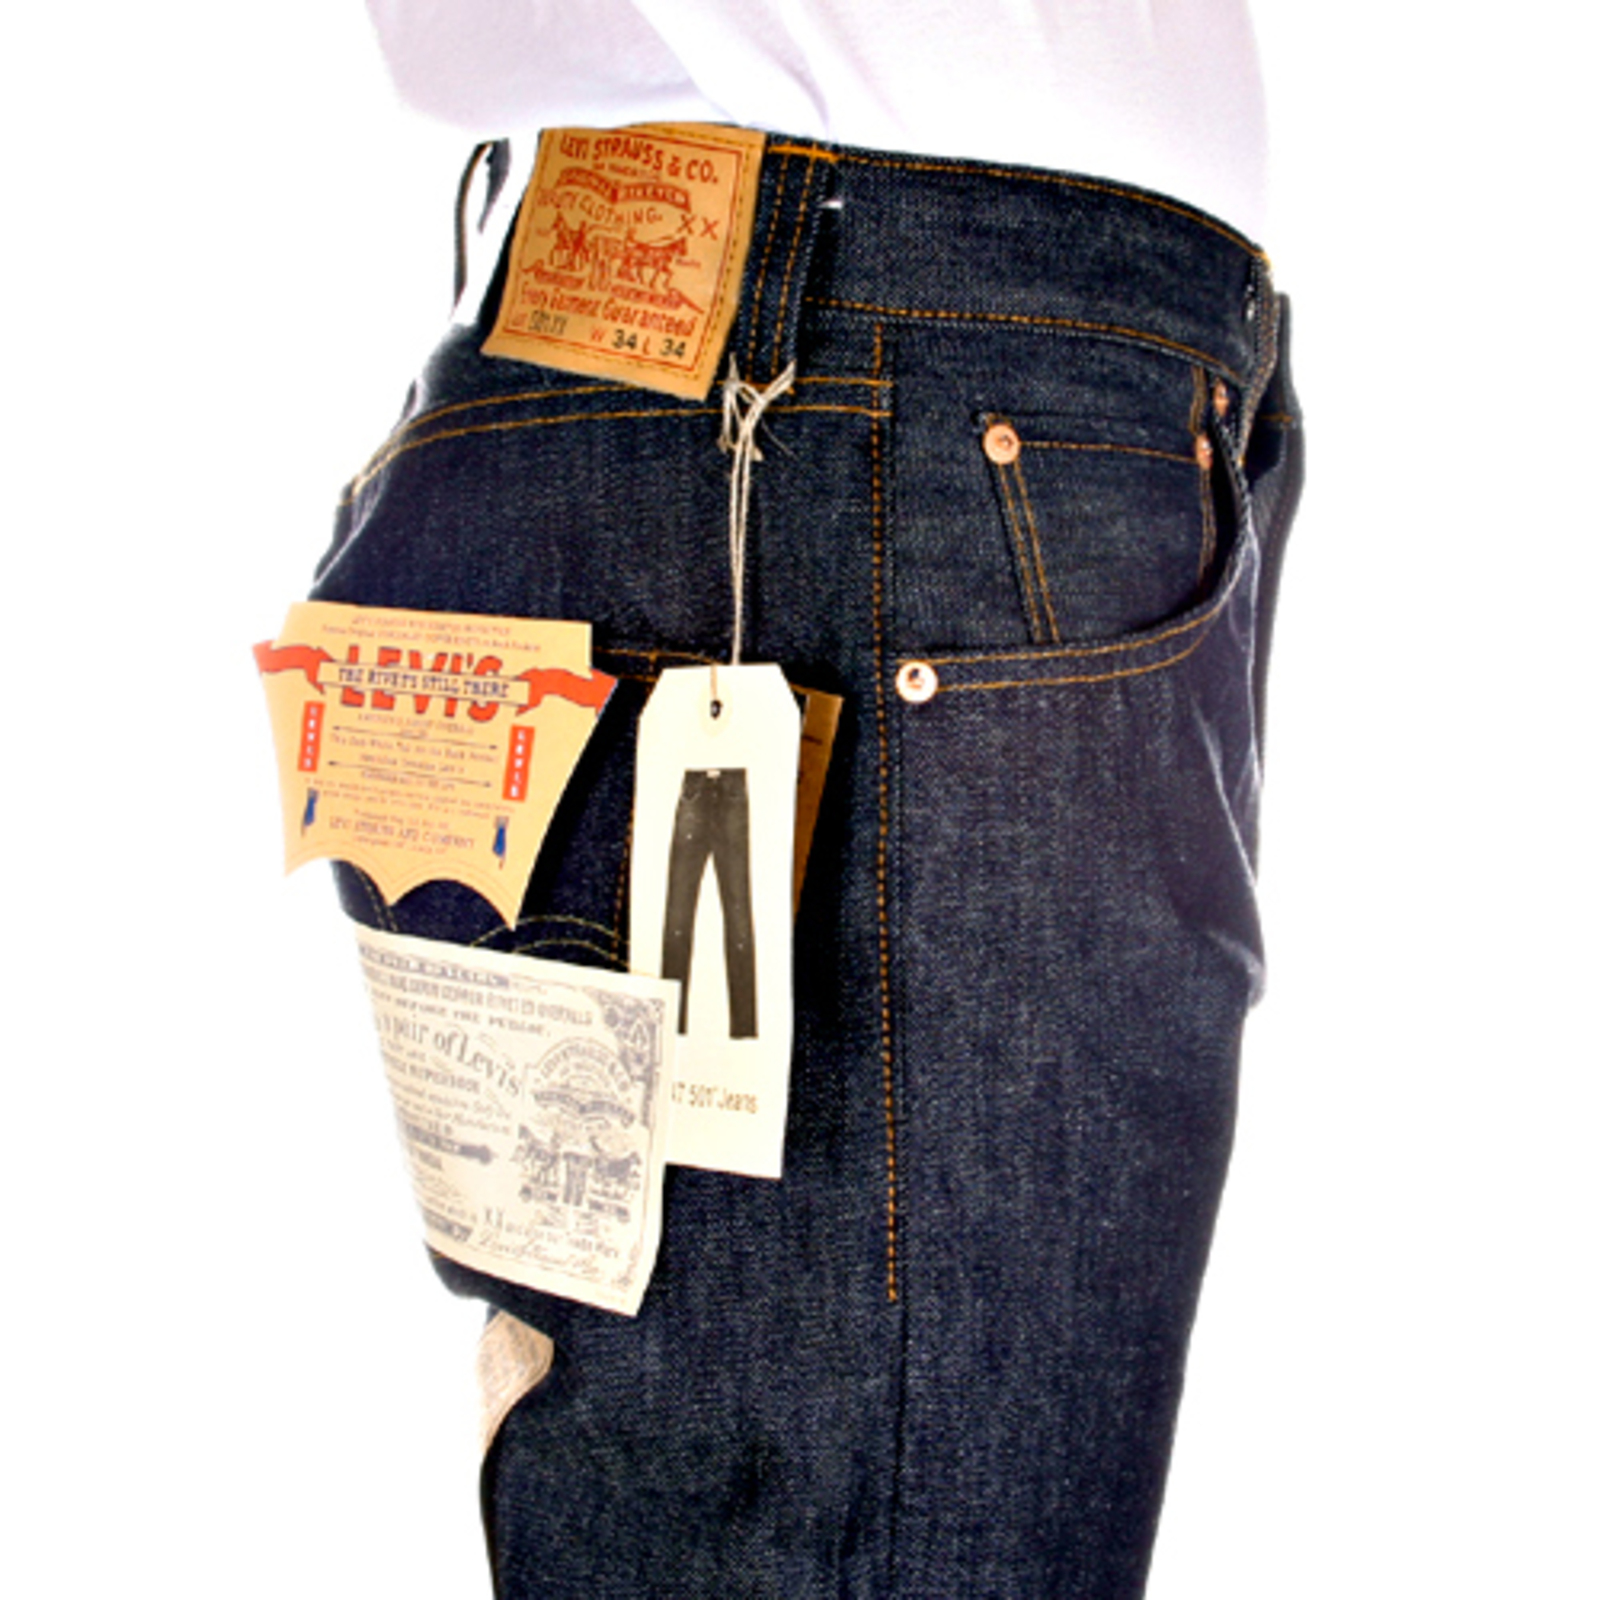 1aa47580f13b7 Levi s jeans Vintage Mens 1947 501 Relaxed Fit Dry Selvedge XX Blue Denim  Jean LEVI4099 at Togged Clothing